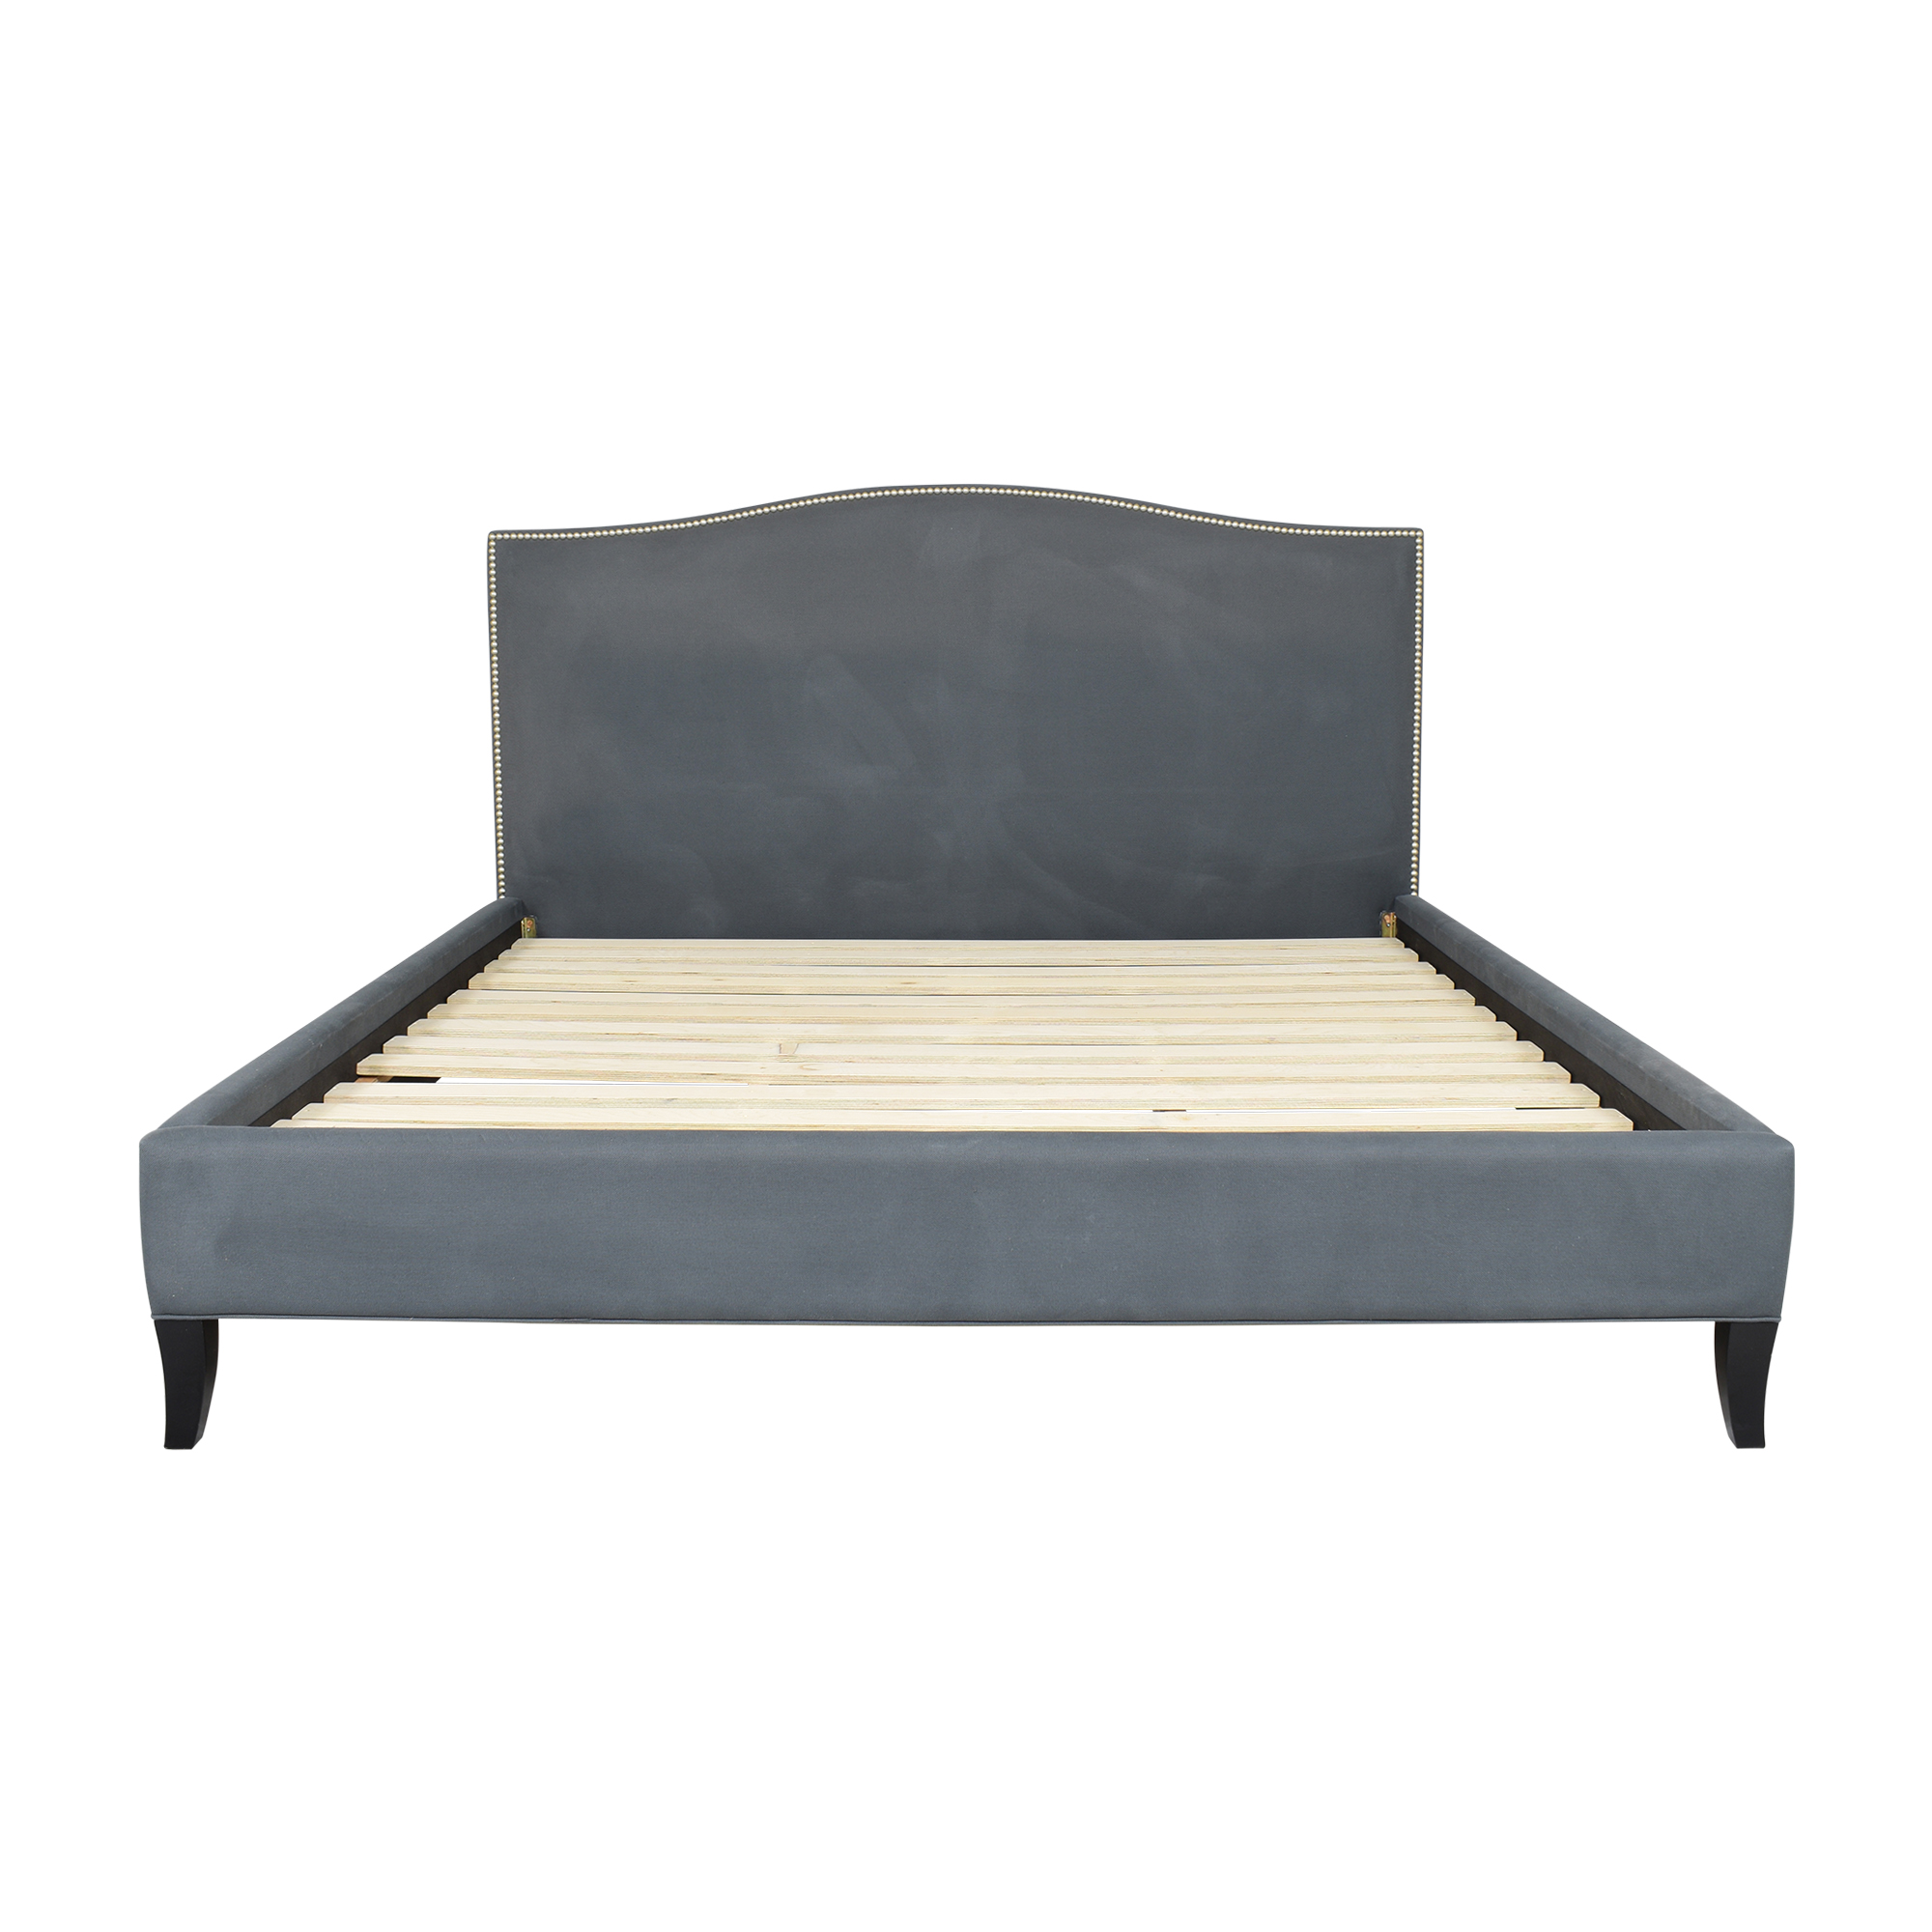 Crate & Barrel Crate & Barrel Colette Upholstered King Bed ma